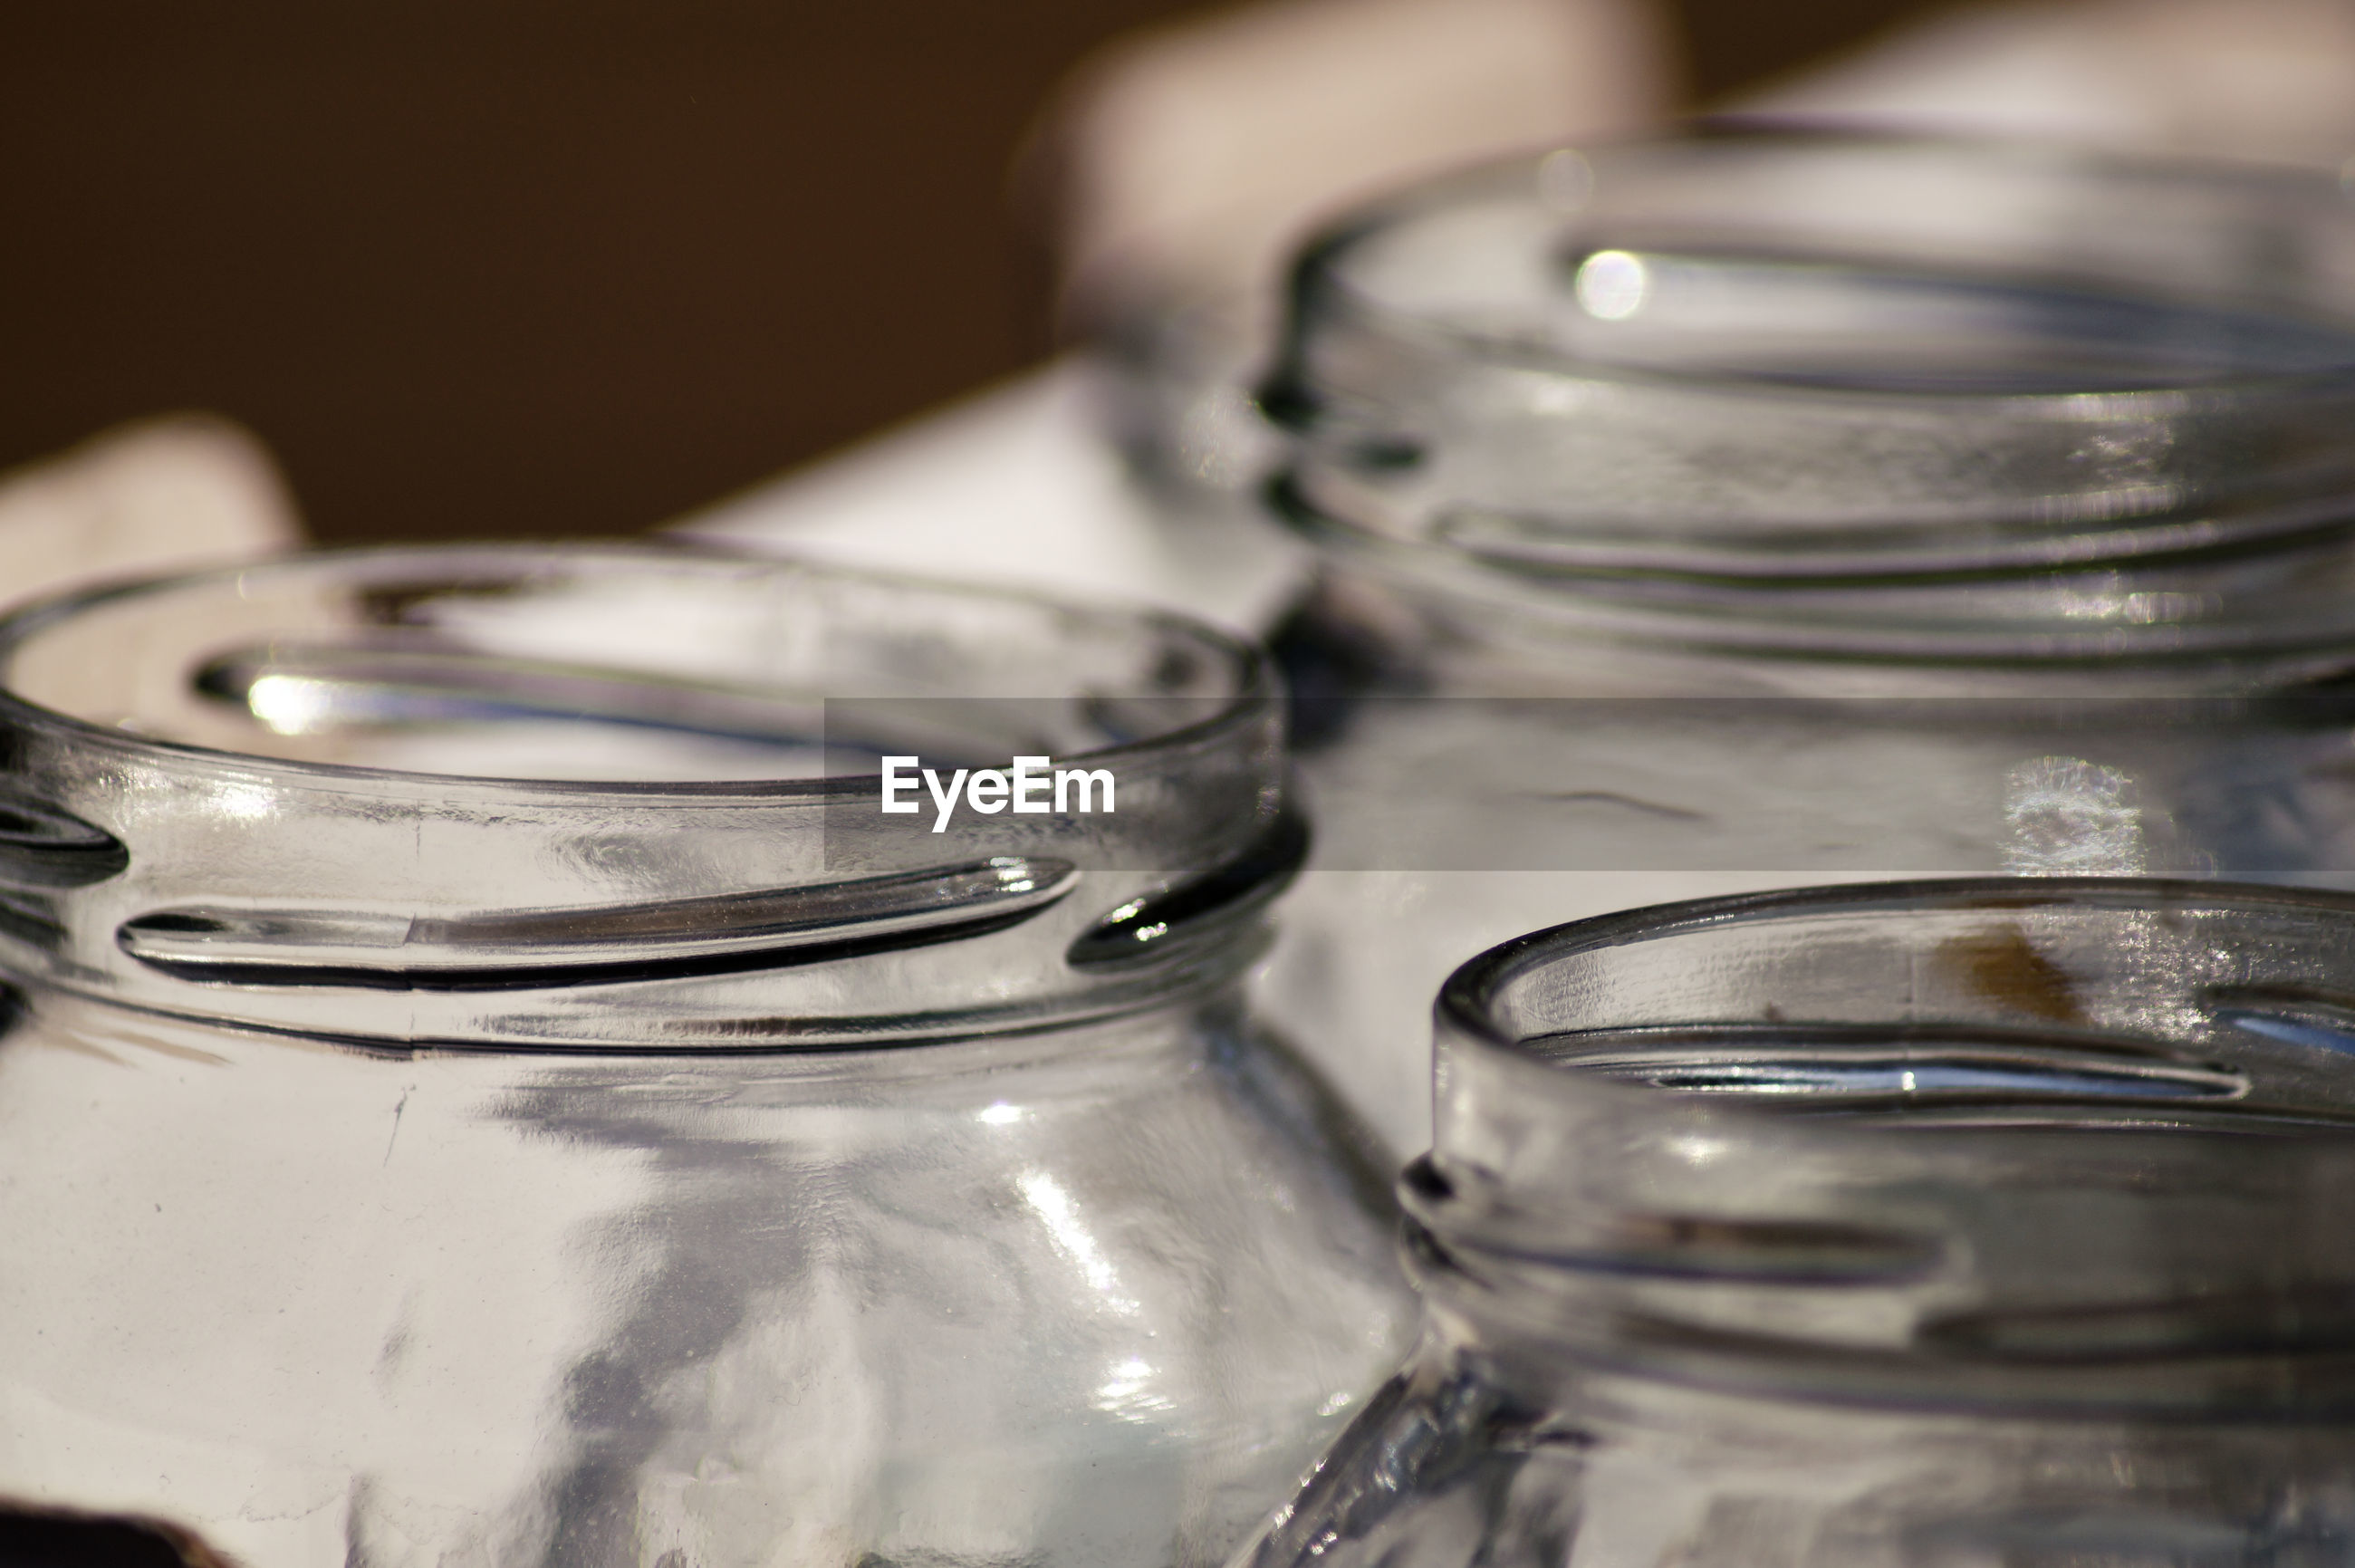 Close-up of open glass jars